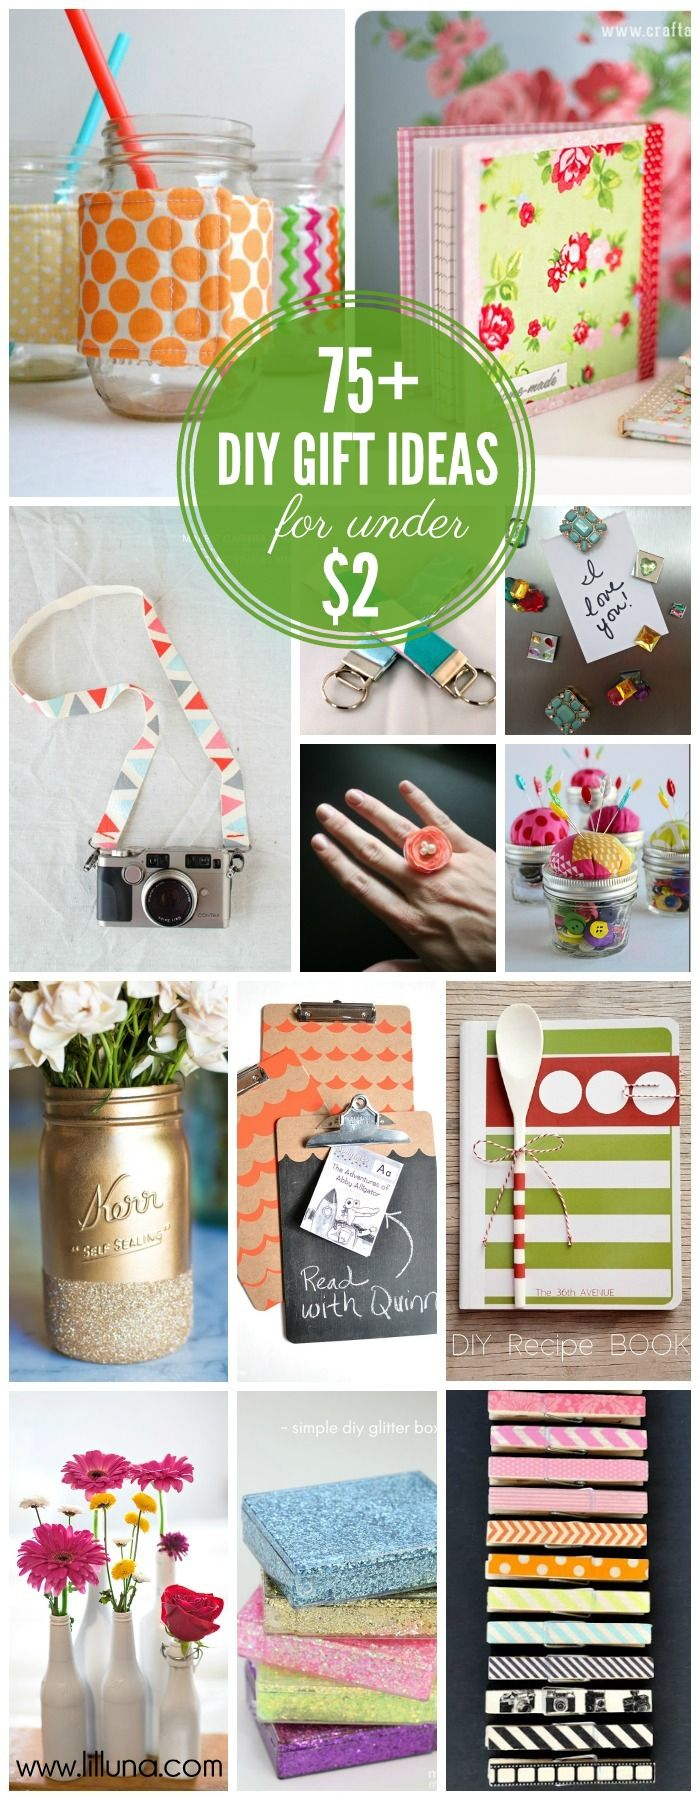 75+ handmade gifts for under $2.